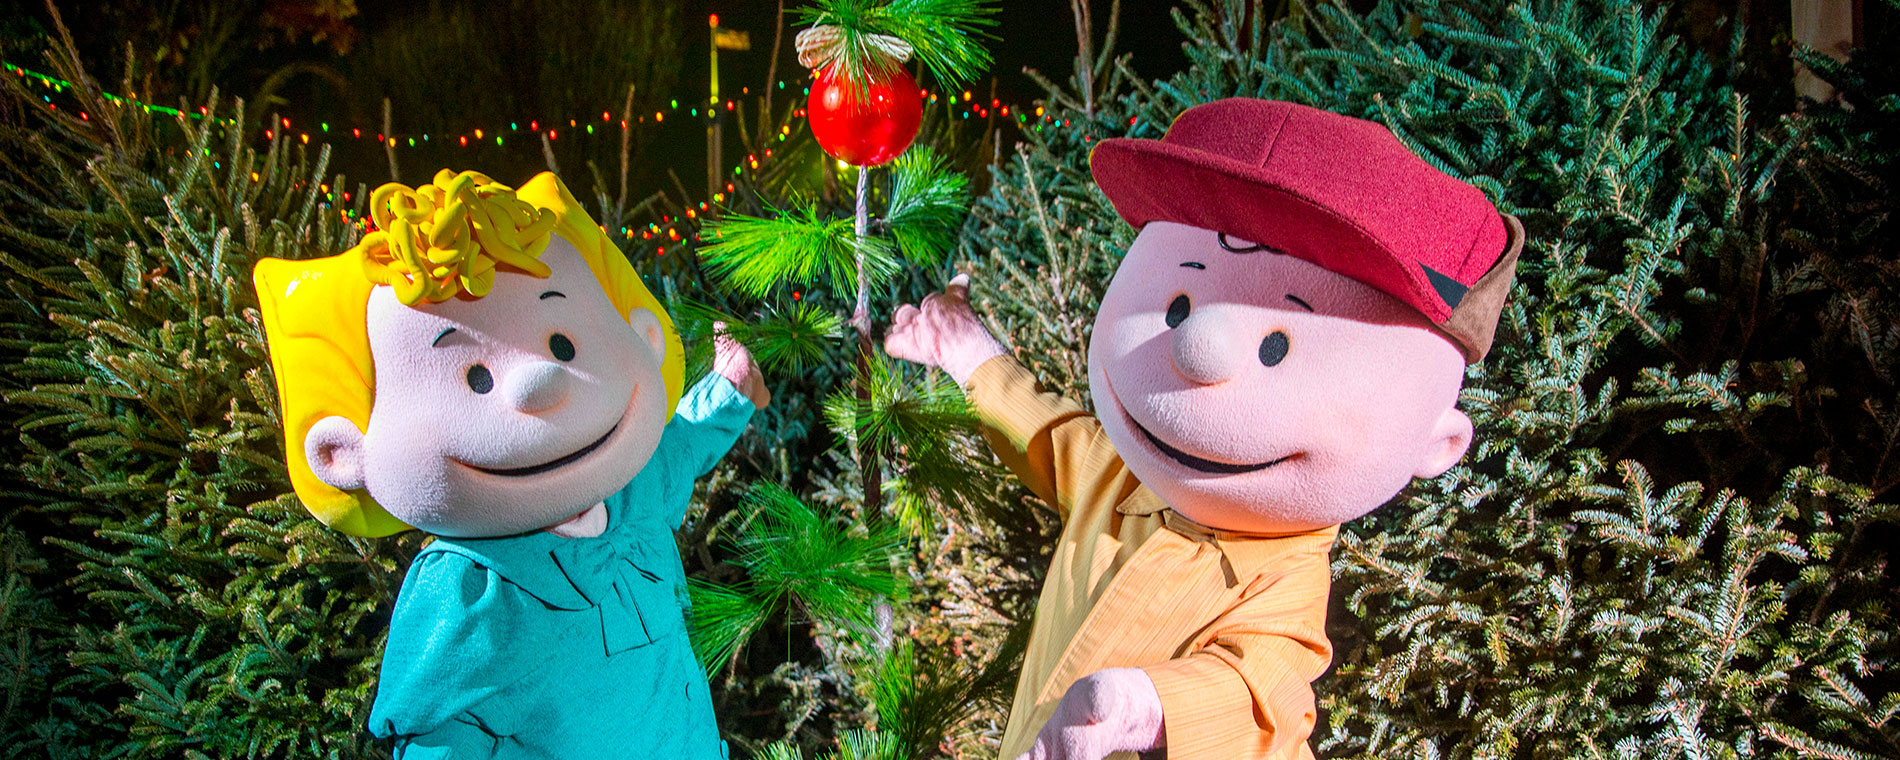 charlie browns christmas town at carowinds holiday event - Charlie Browns Christmas